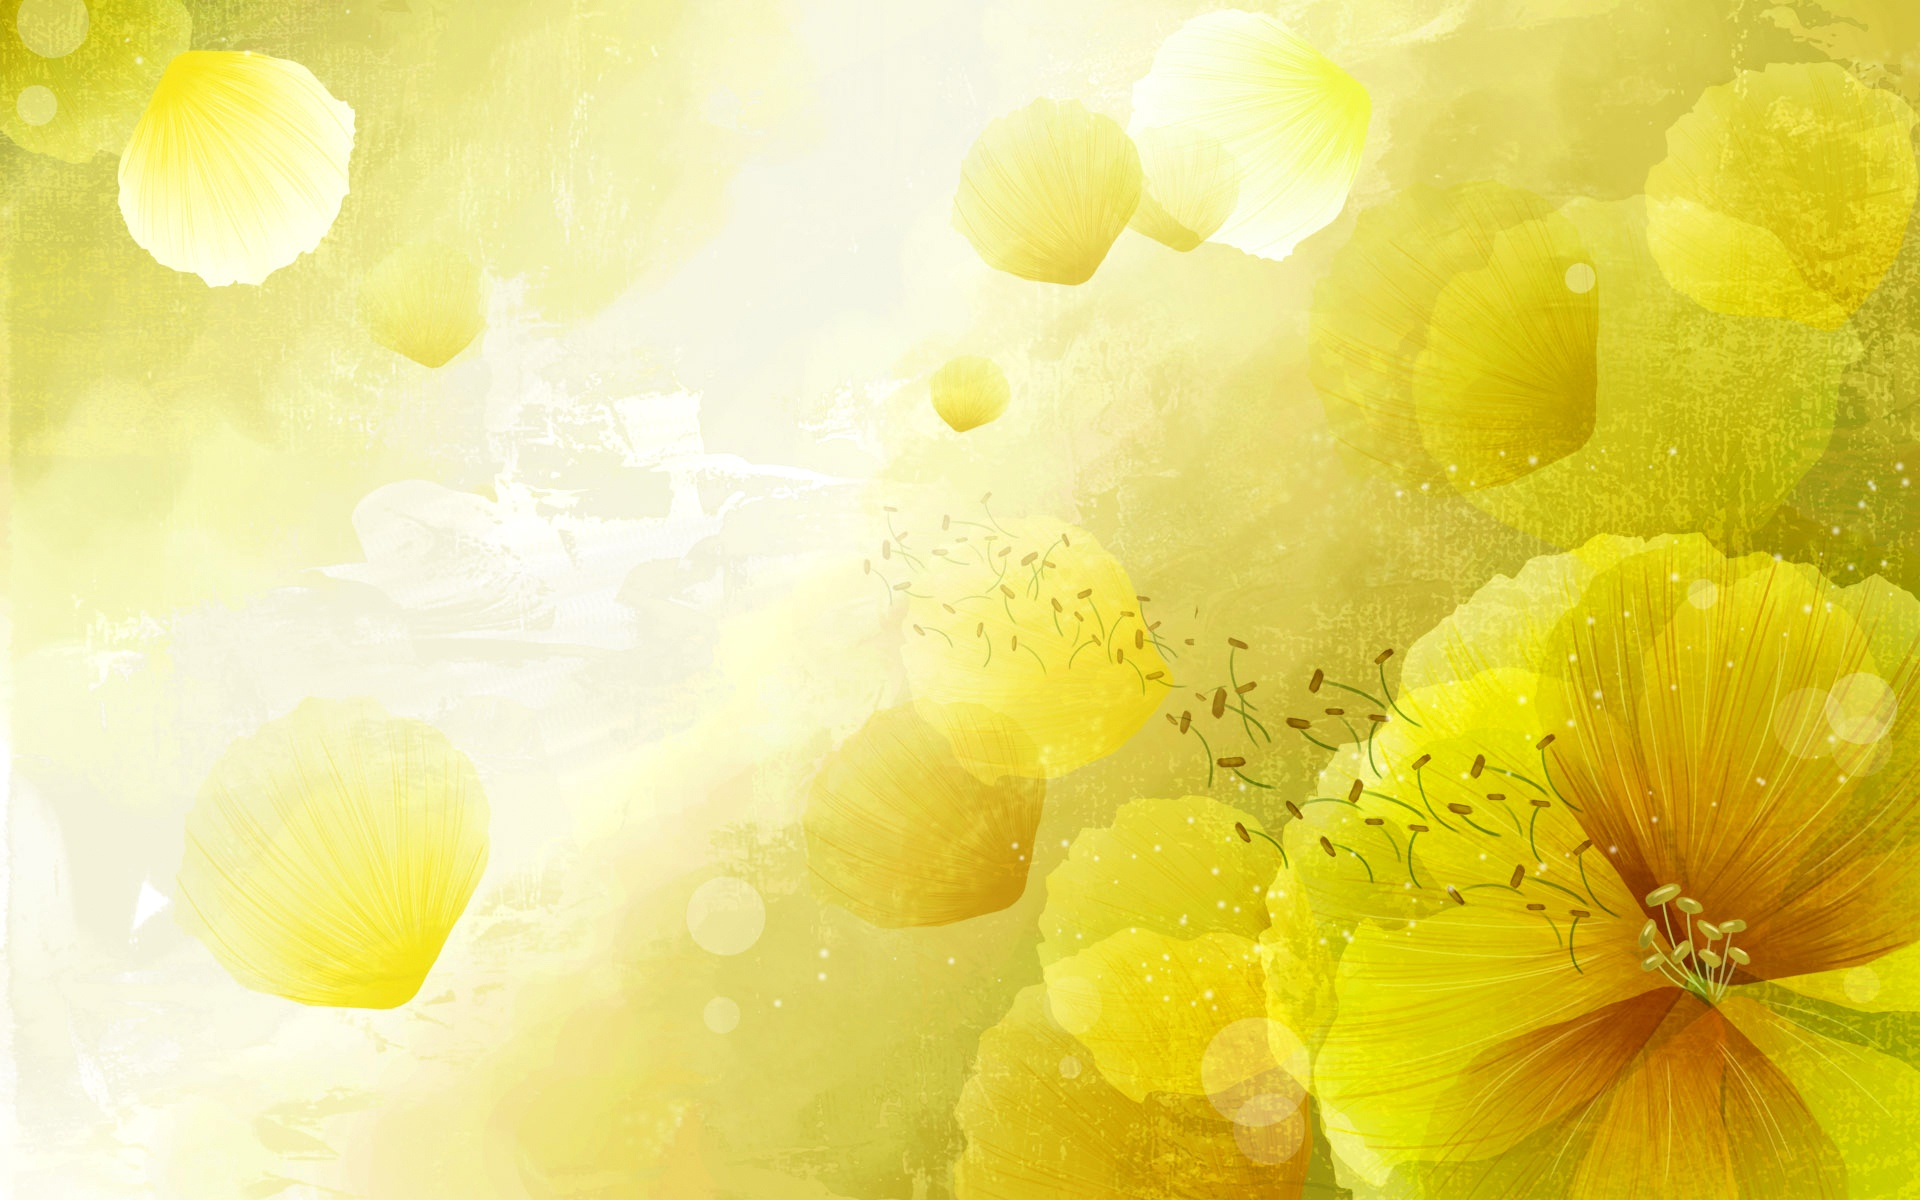 Wallpaper Yellow Flowers Background Postcard 1920x1200 Hd Picture